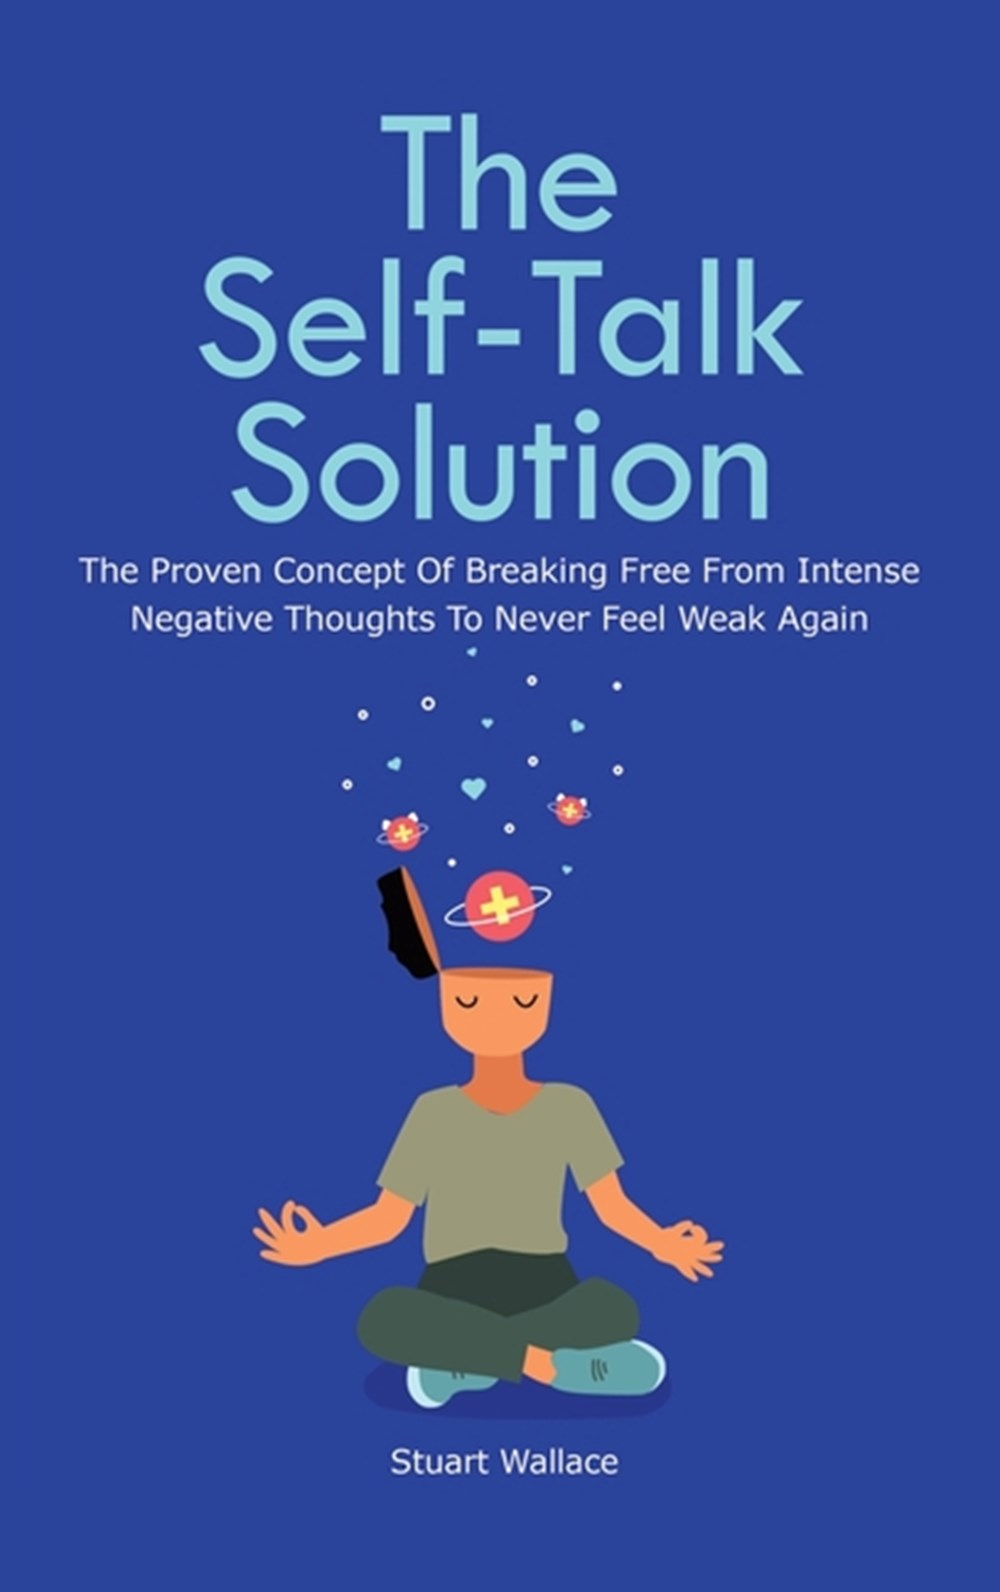 Self-Talk Solution The Proven Concept Of Breaking Free From Intense Negative Thoughts To Never Feel